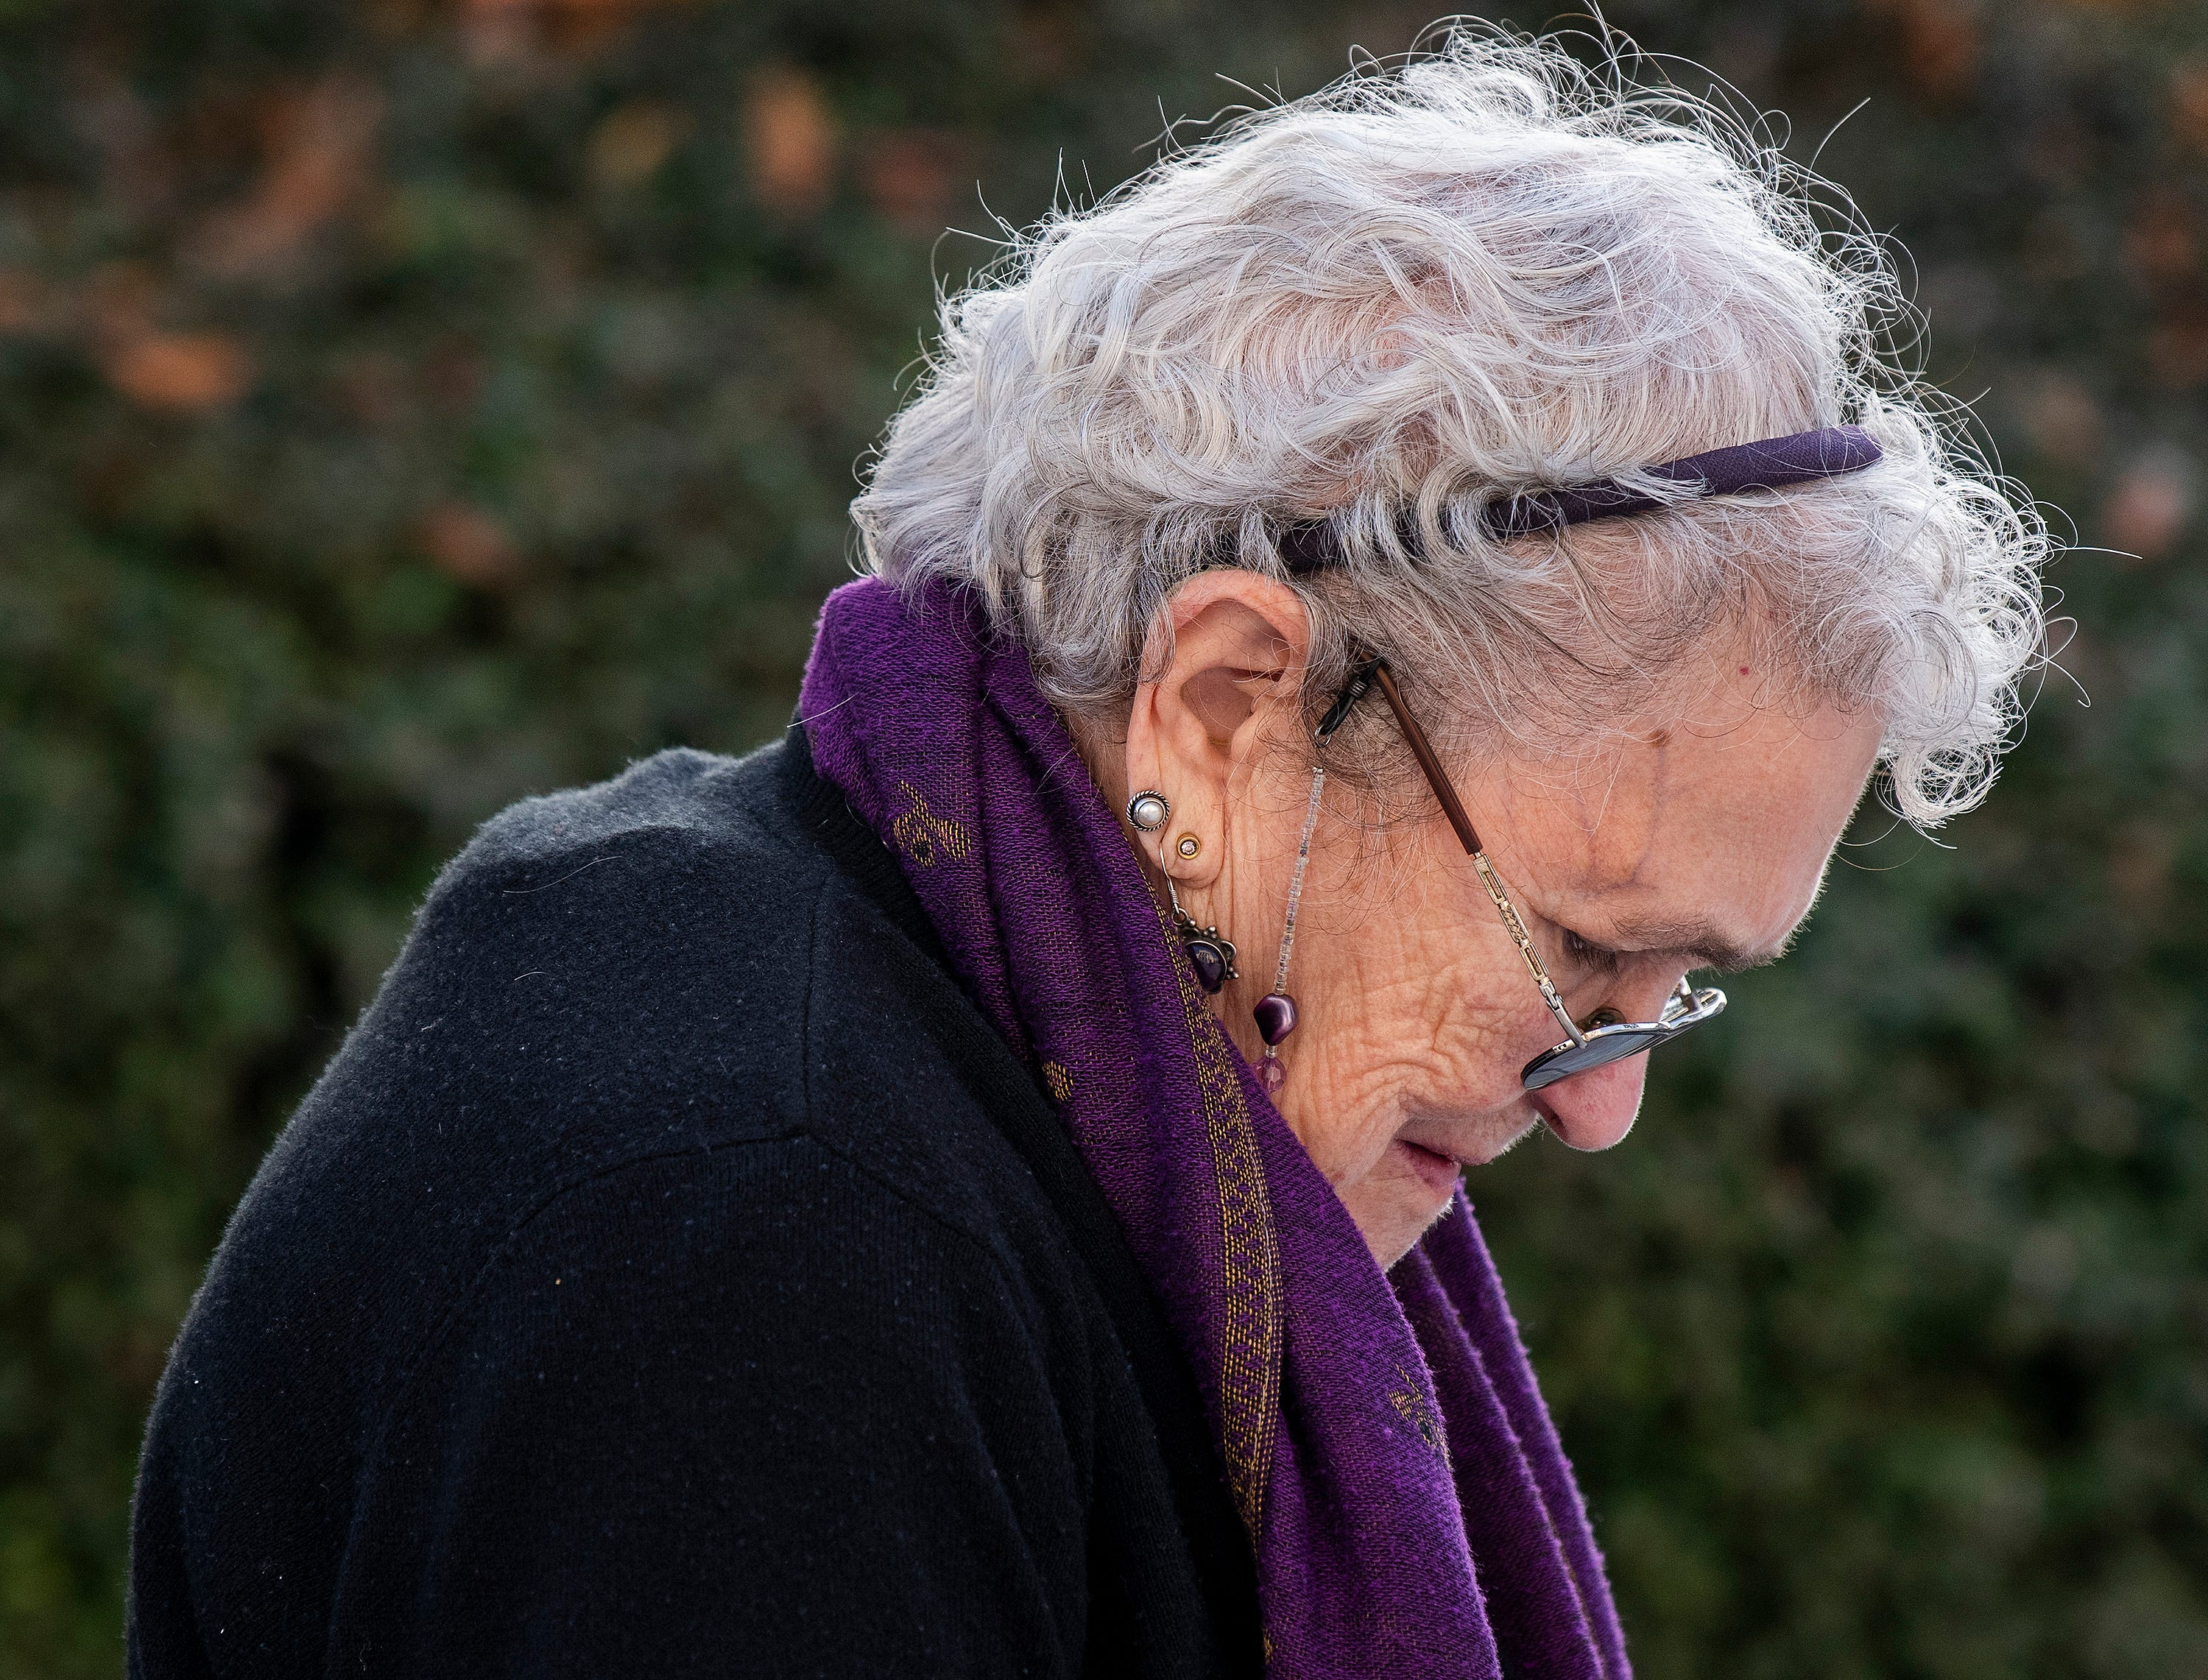 Jeannie Graetz bows her head during a moment of silence during the Vigil for Victims of Hate and Violence held on the state capitol steps in Montgomery, Ala., on Saturday February 16, 2019.